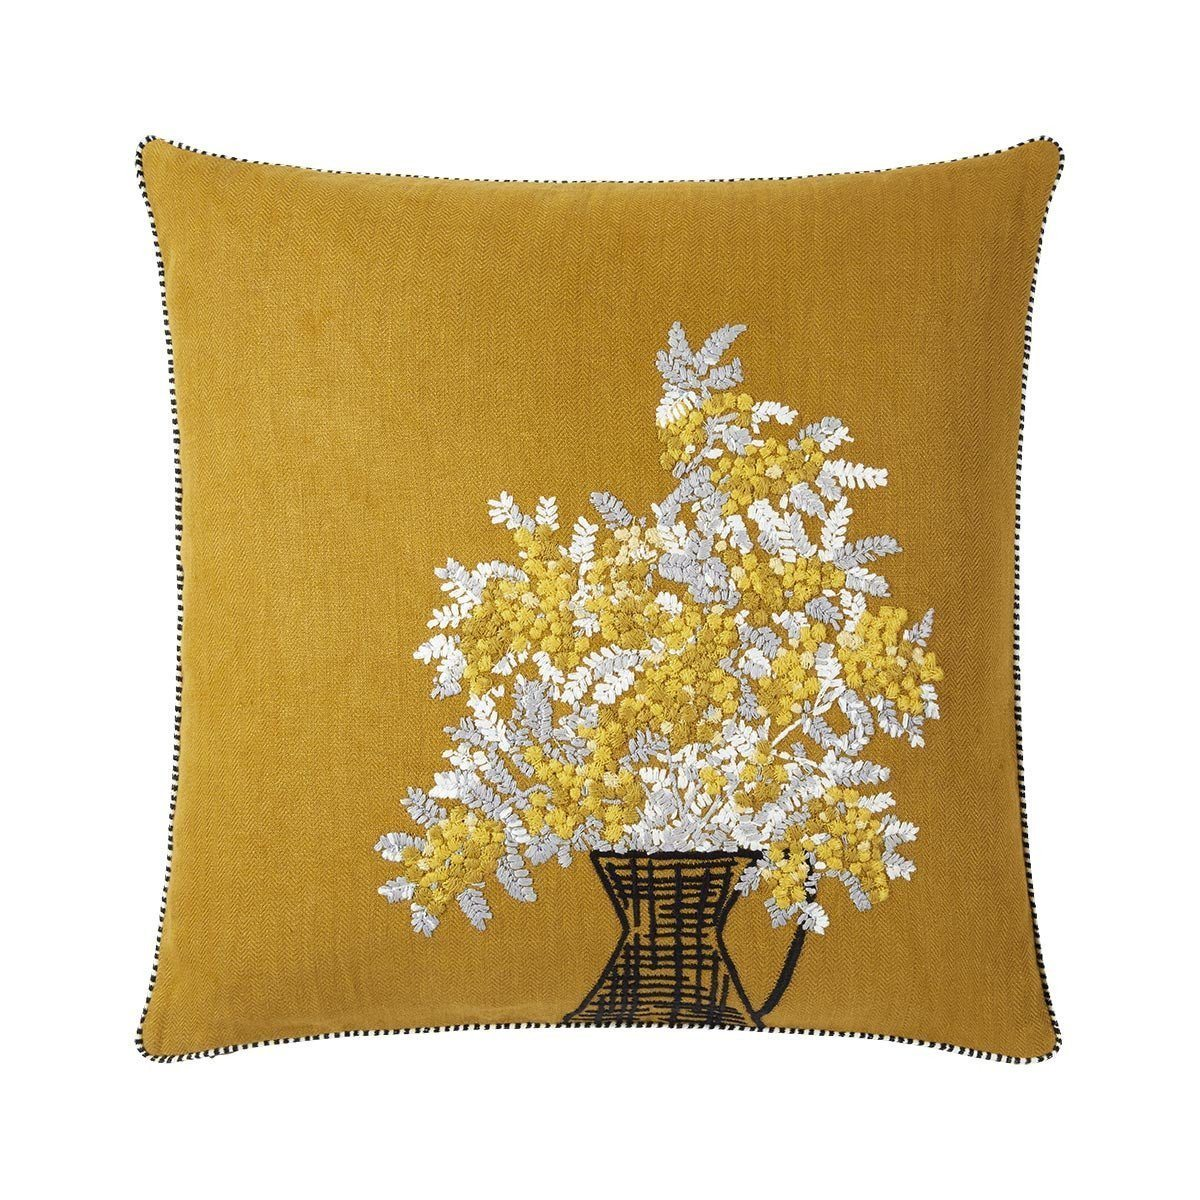 Mimosa Ocre Decorative Pillow by Iosis